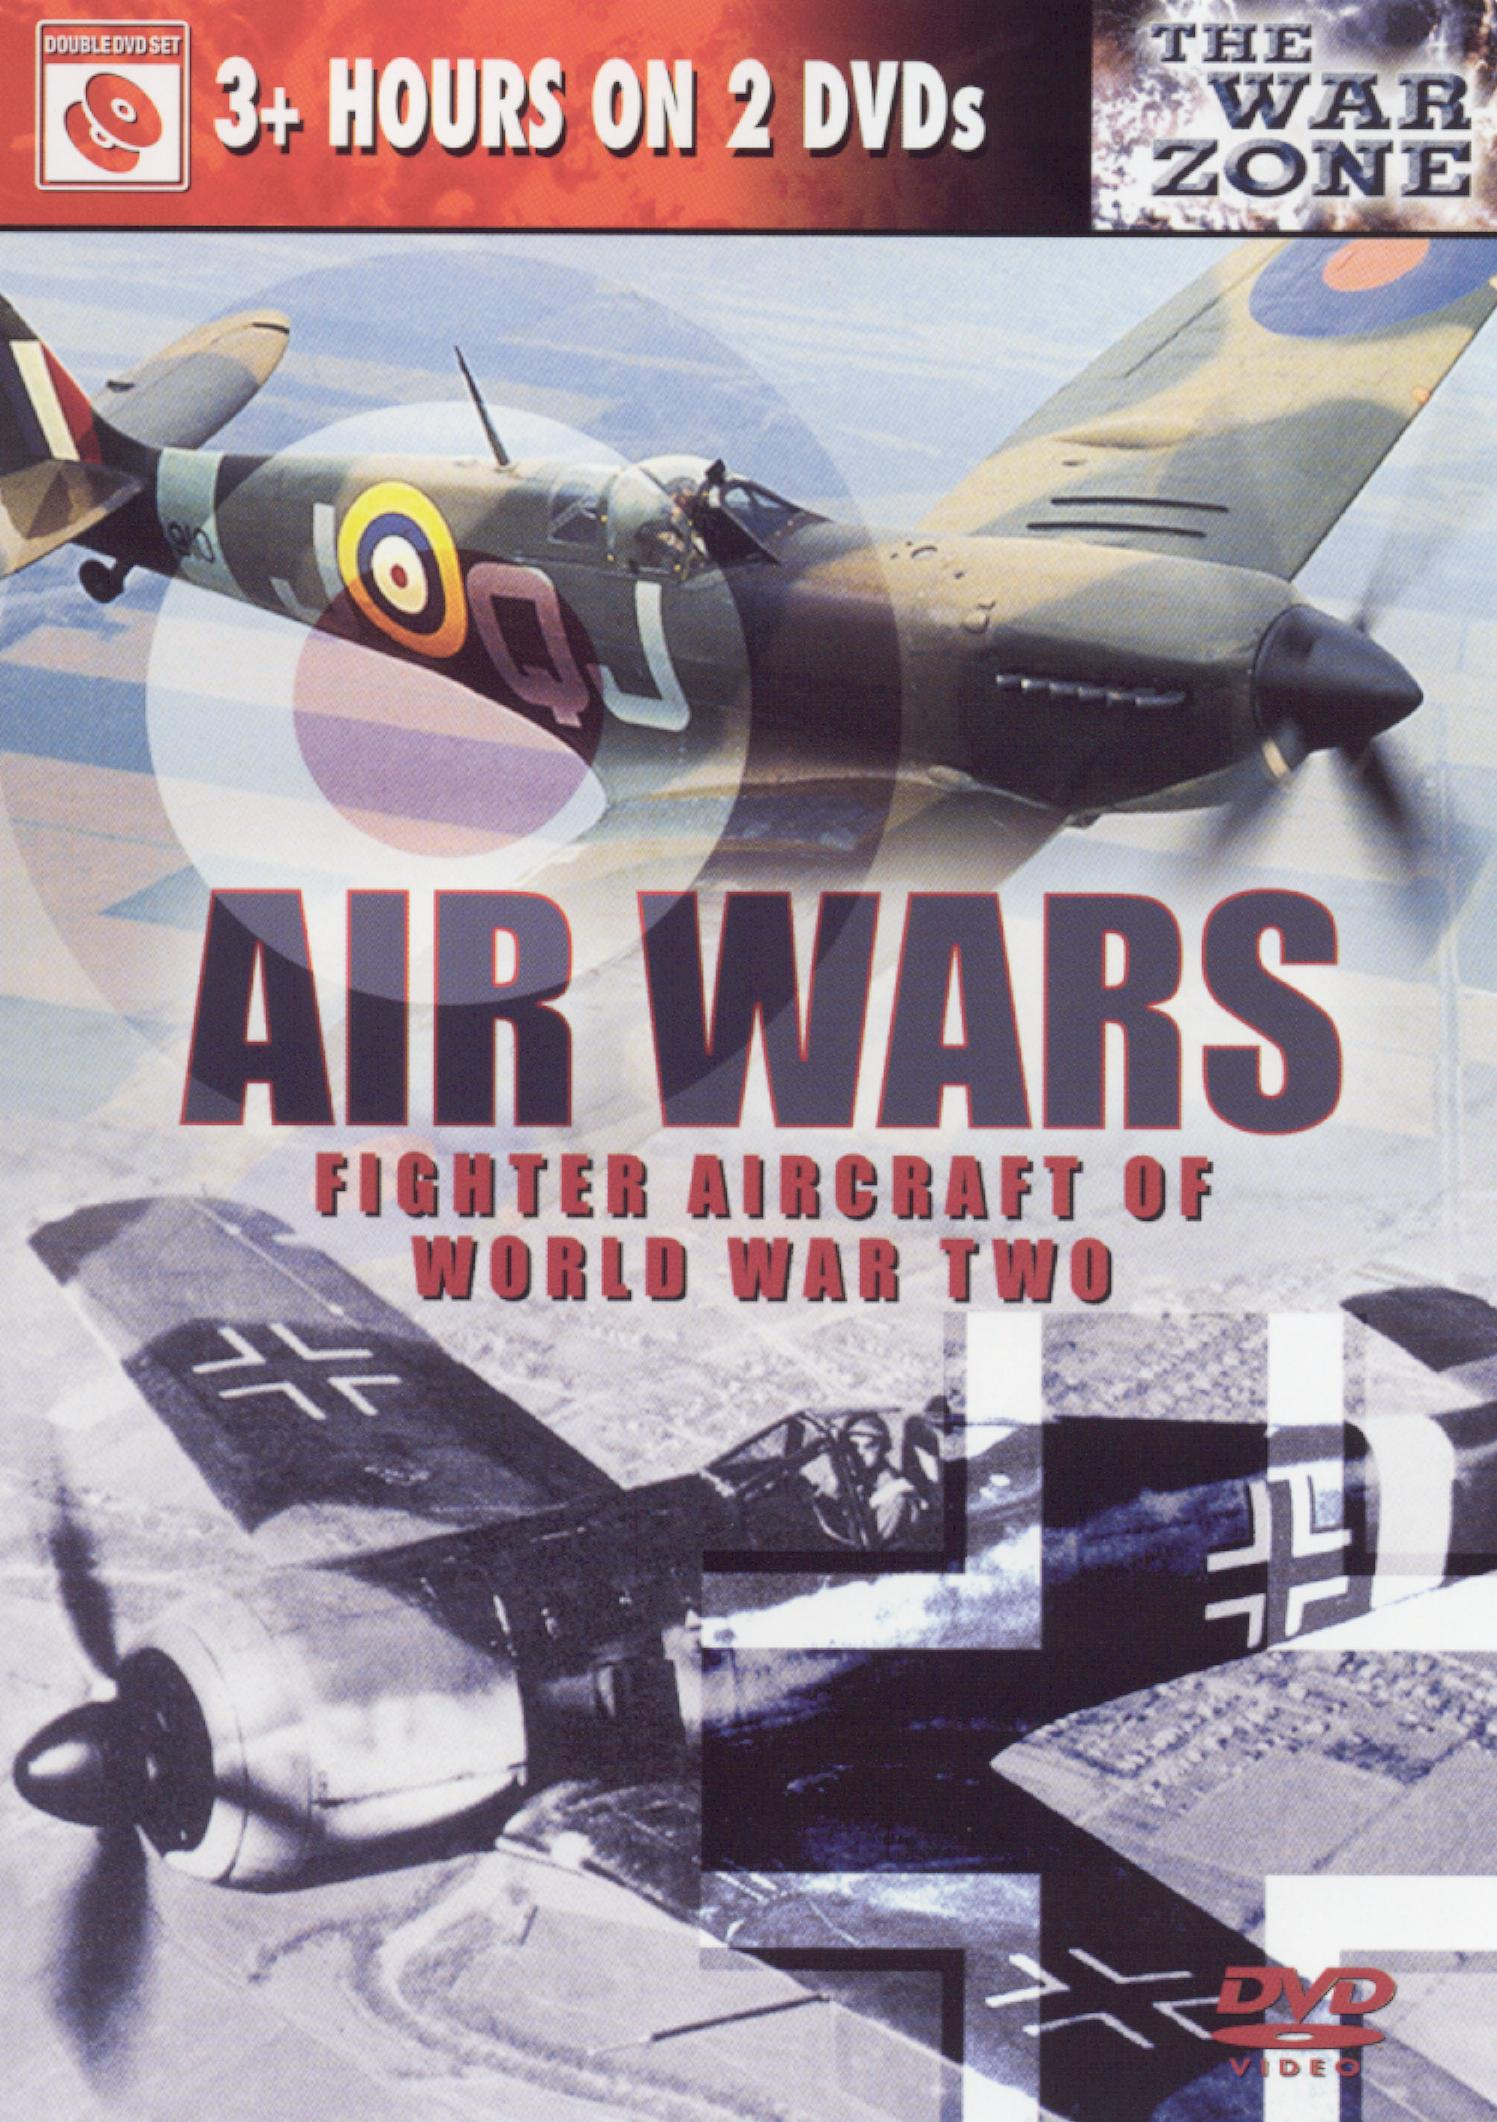 Air Wars: Fighter Aircraft of WWII